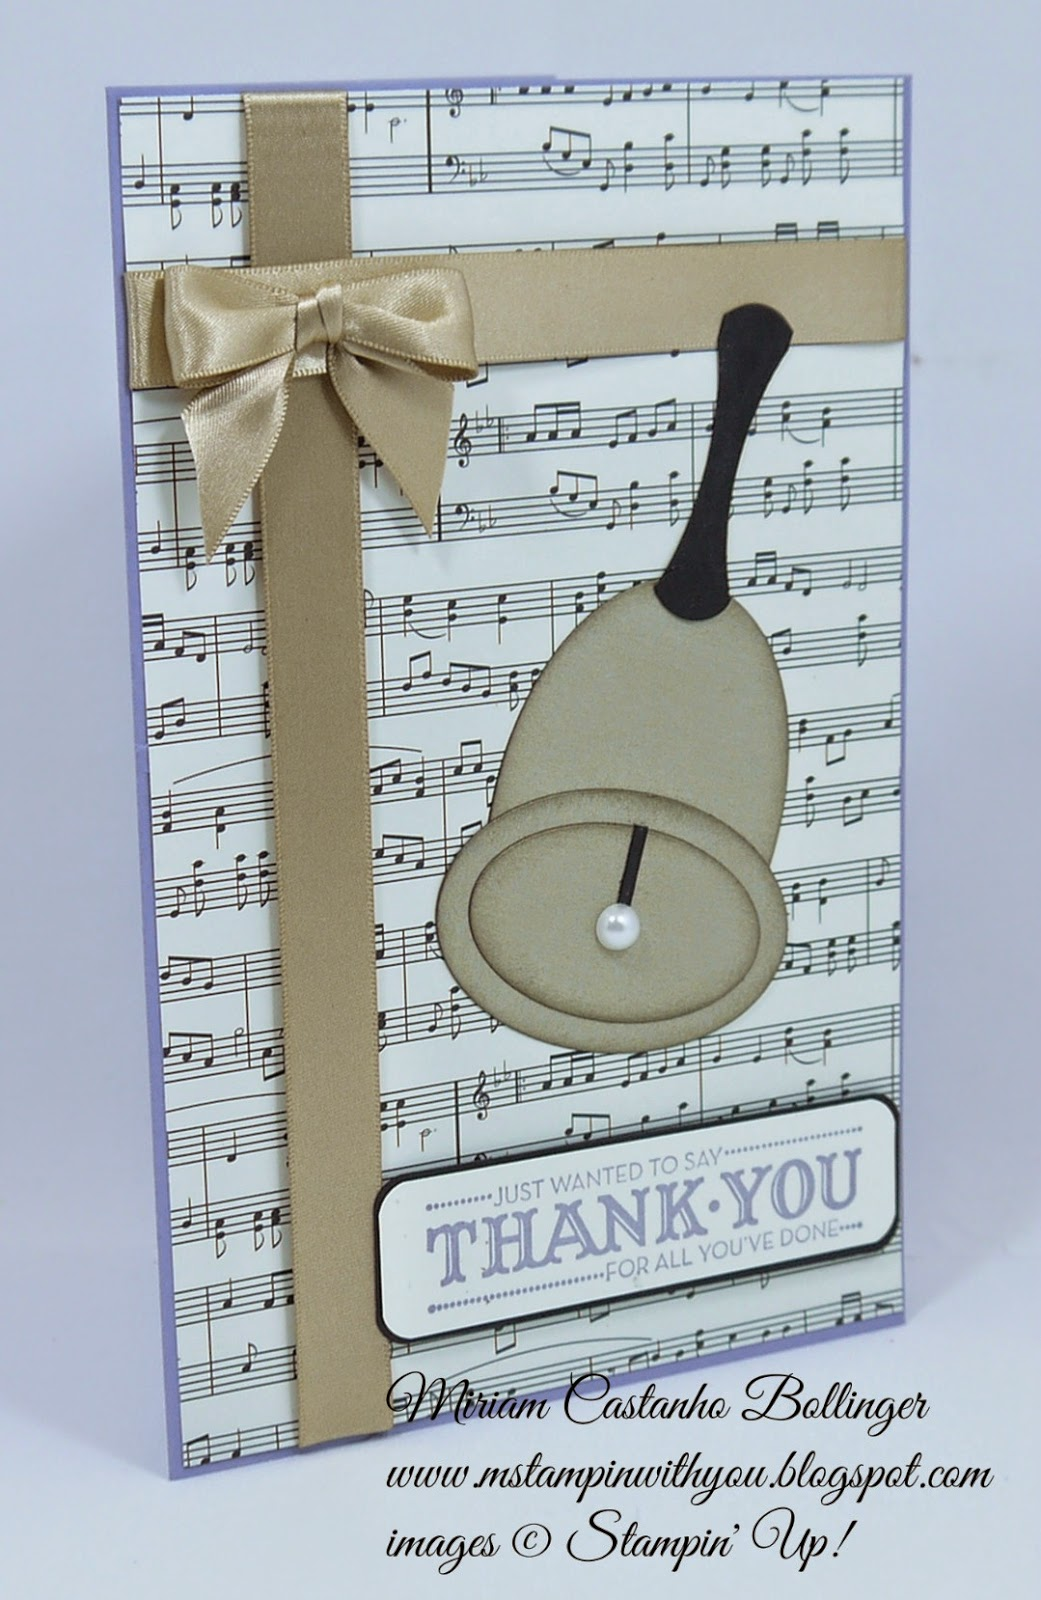 Miriam Castanho Bollinger, #mstampinwithyou, stampin up, demonstrator, handbell, let your hair down, big shot, oval collection framelits, brushed gold card stock, thank you, su